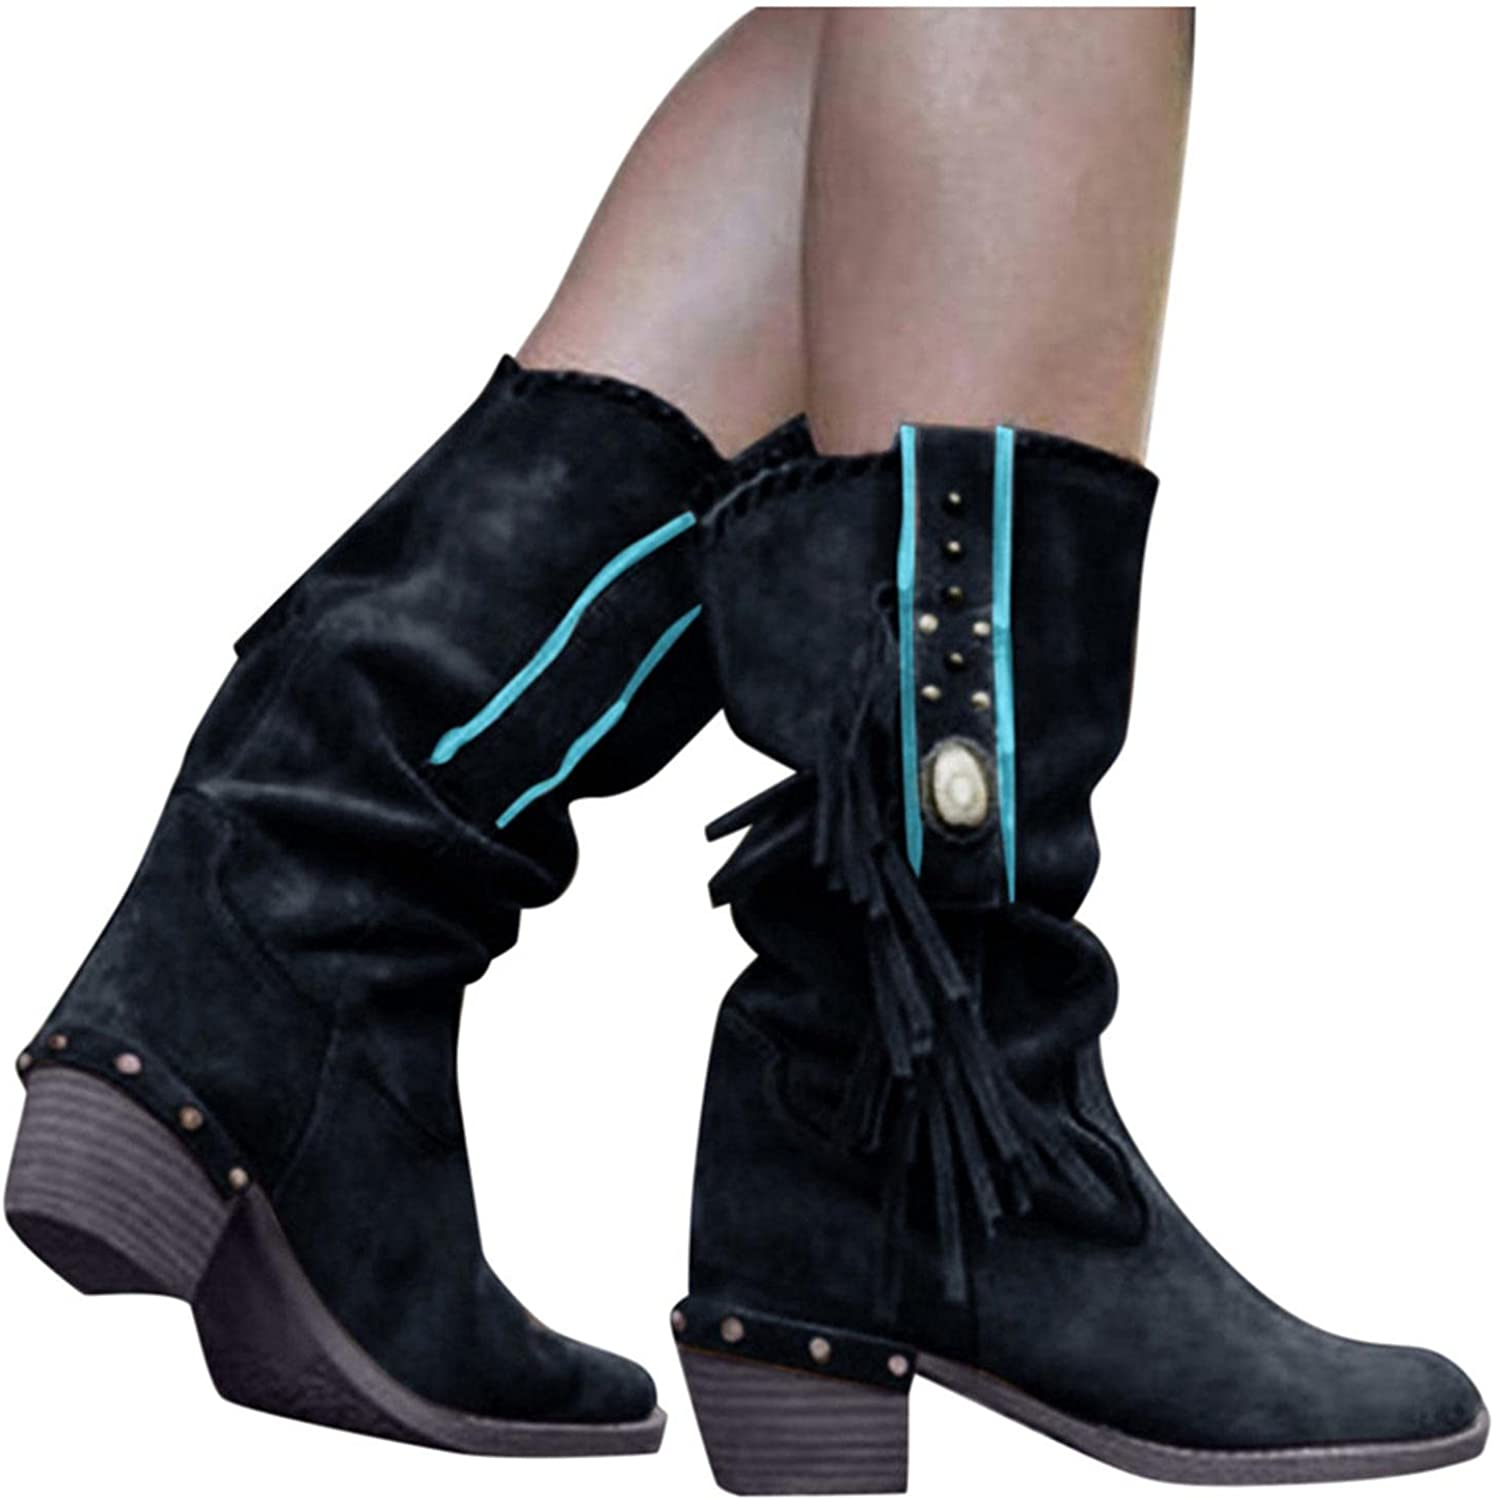 Cowgirl Boots for Women Fashion Mid Calf Boots Pointed Toe Low Block Heel Cowboy Boots Slip on Casual Western Shoes